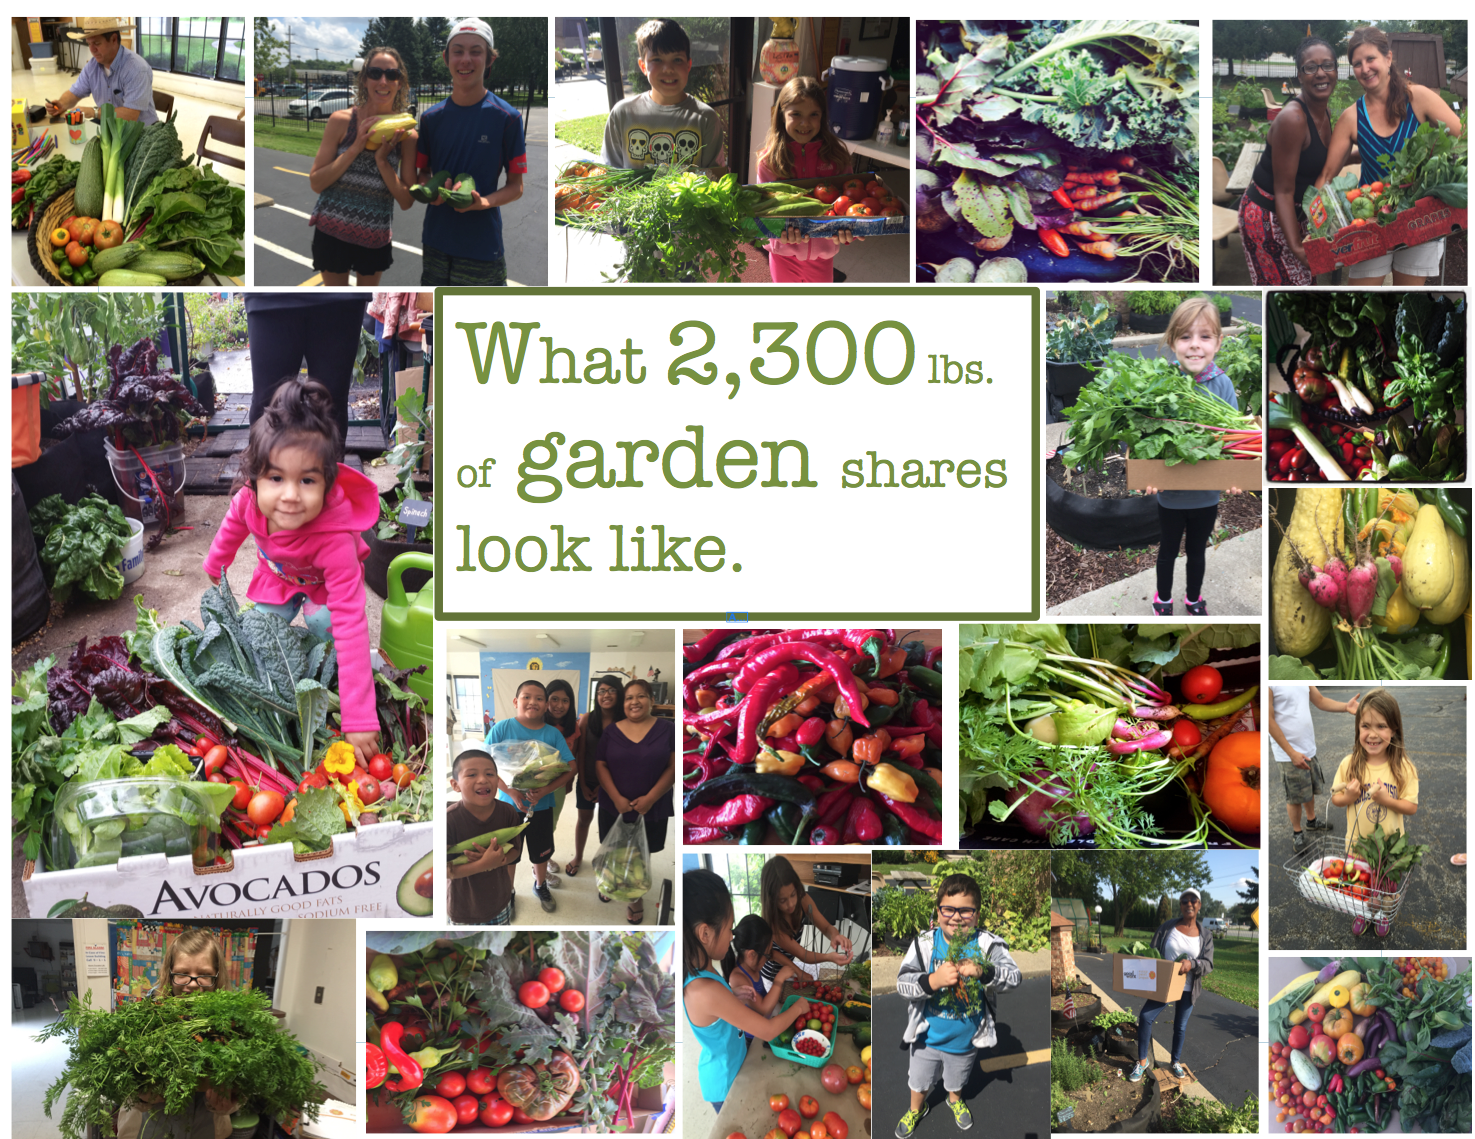 Since the spring of 2015 we've gone about starting garden patches in our community to raise awareness about families in our community struggling to access food, especially garden fresh foods. We've invited families to grow with us. We've provided all of the materials necessary, as well as the instruction, to get families growing some of their own garden fresh vegetables. We've grown and distributed over one ton of garden shares with our select families as well as local food pantries.  We're working to establish more garden patches around our community so we can work to assist even more families and introduce our neighbors to the power of growing one's own food.  If you would like to get involved please consider clicking on the  Volunteer Here  Tab in the upper left menu and leave your contact info.  We're working to see that hunger has no place here in Darien.